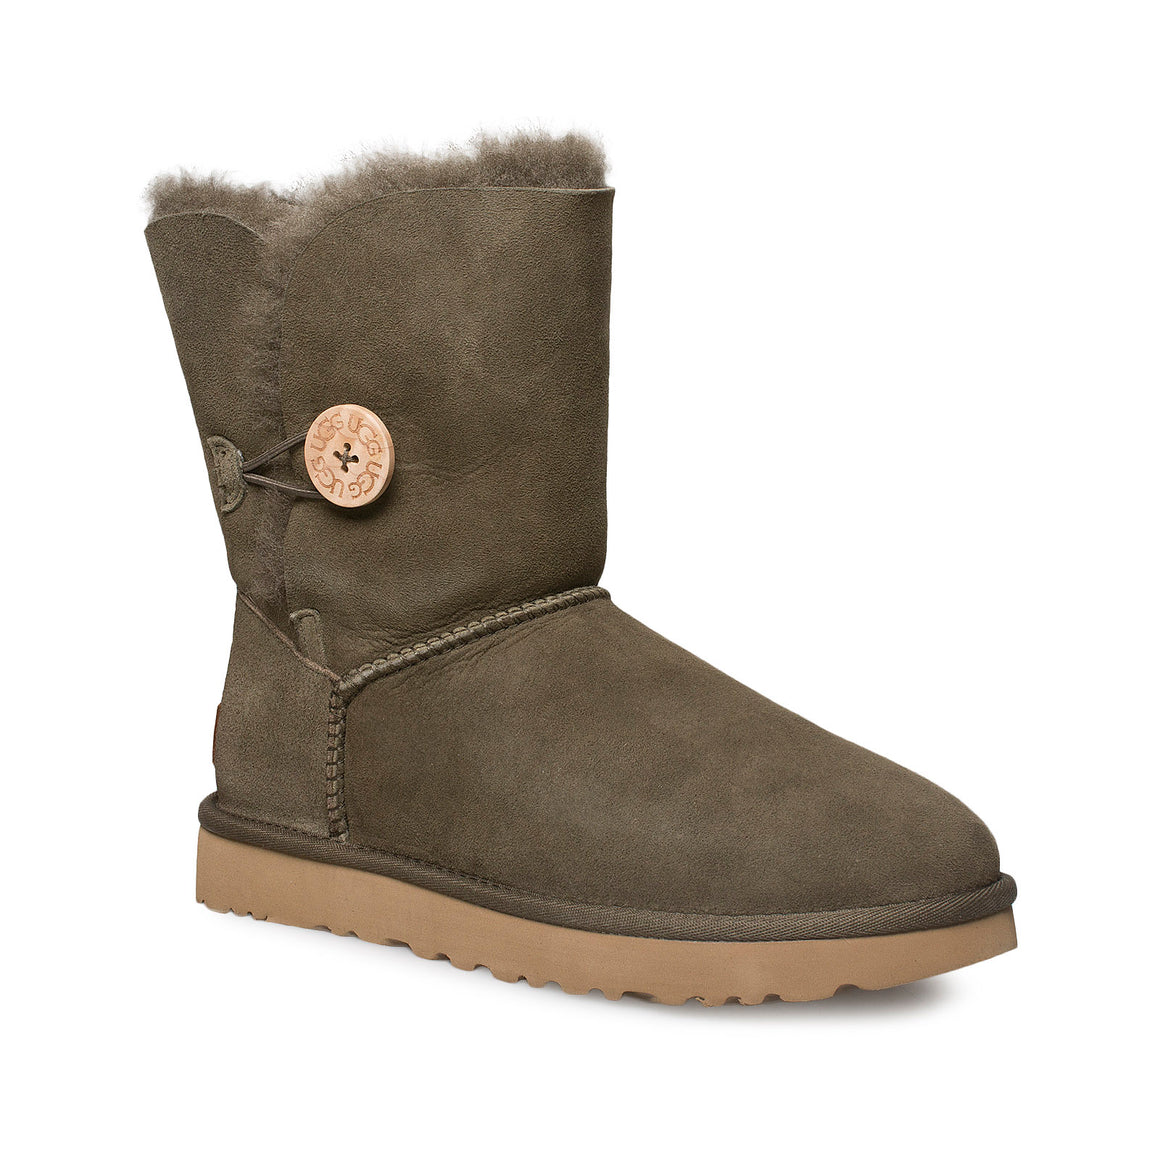 UGG Bailey Button II Eucalyptus Spray Boots - Women's